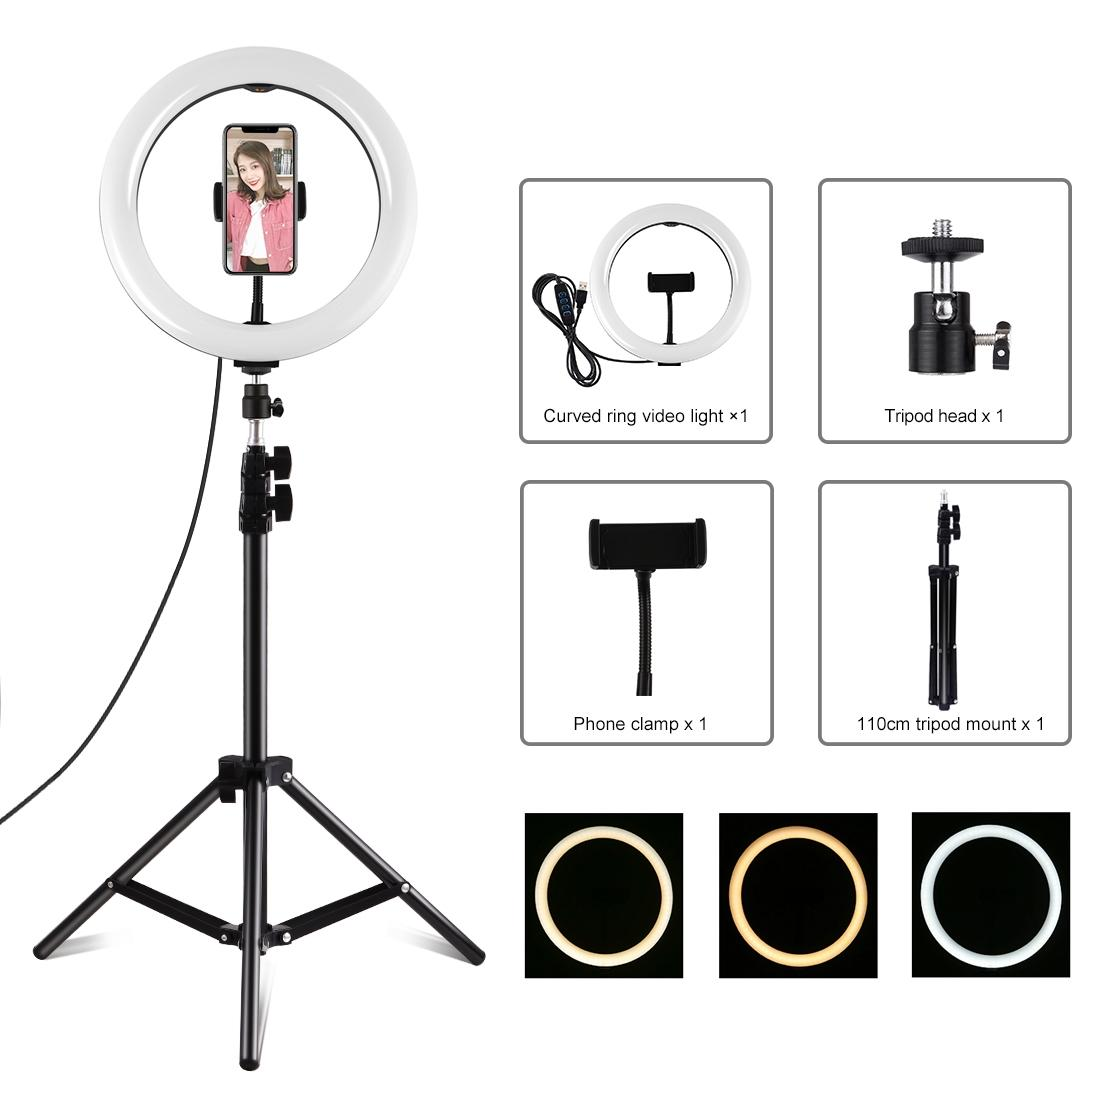 PULUZ 10.2 inch 26cm Dual Color Temperature LED Curved Diffuse Light Vlogging Selfie Photography Video Lights with Phone Clamp